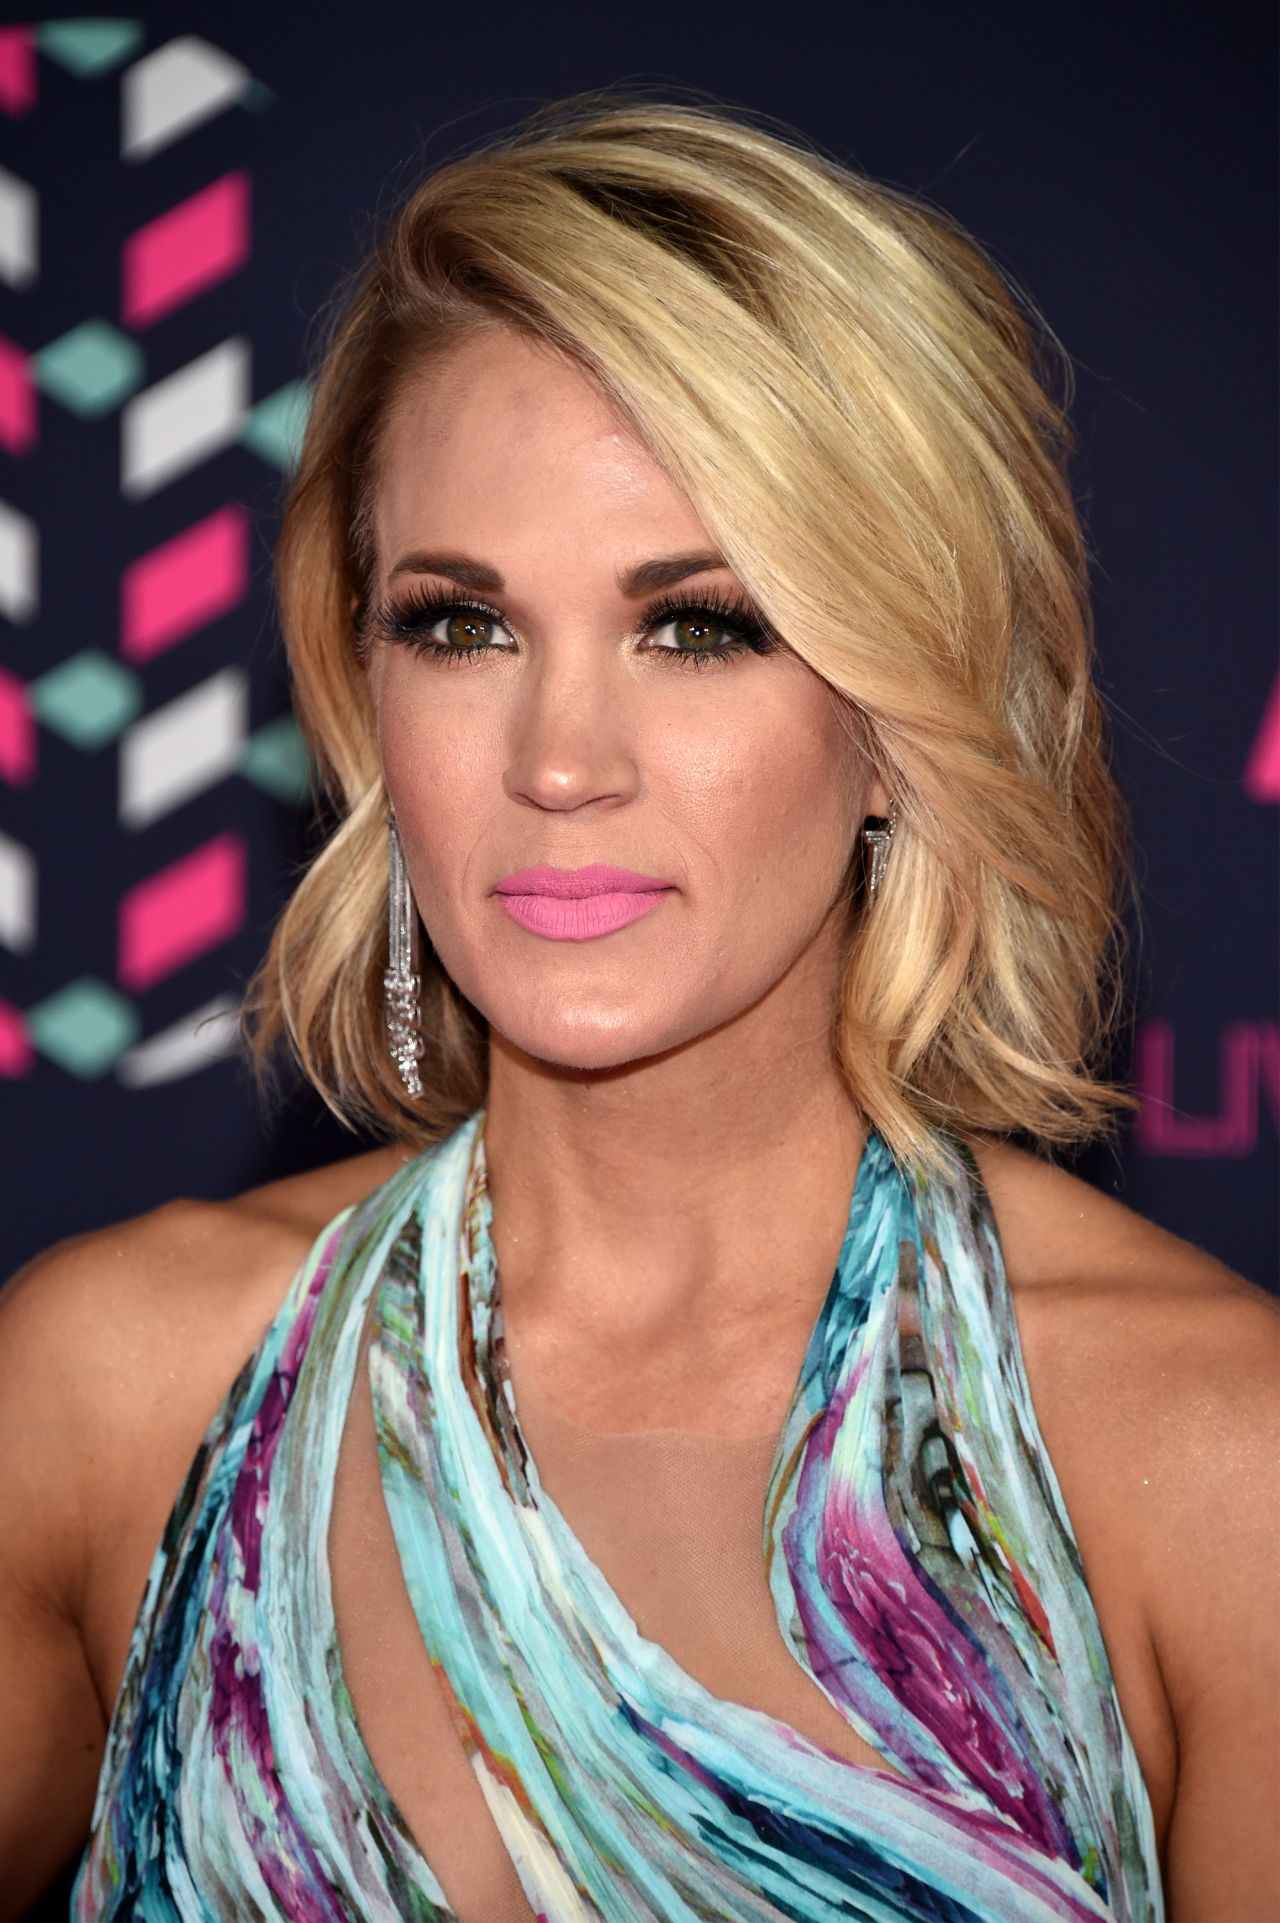 Carrie Underwood 2016 Cmt Music Awards In Nashville